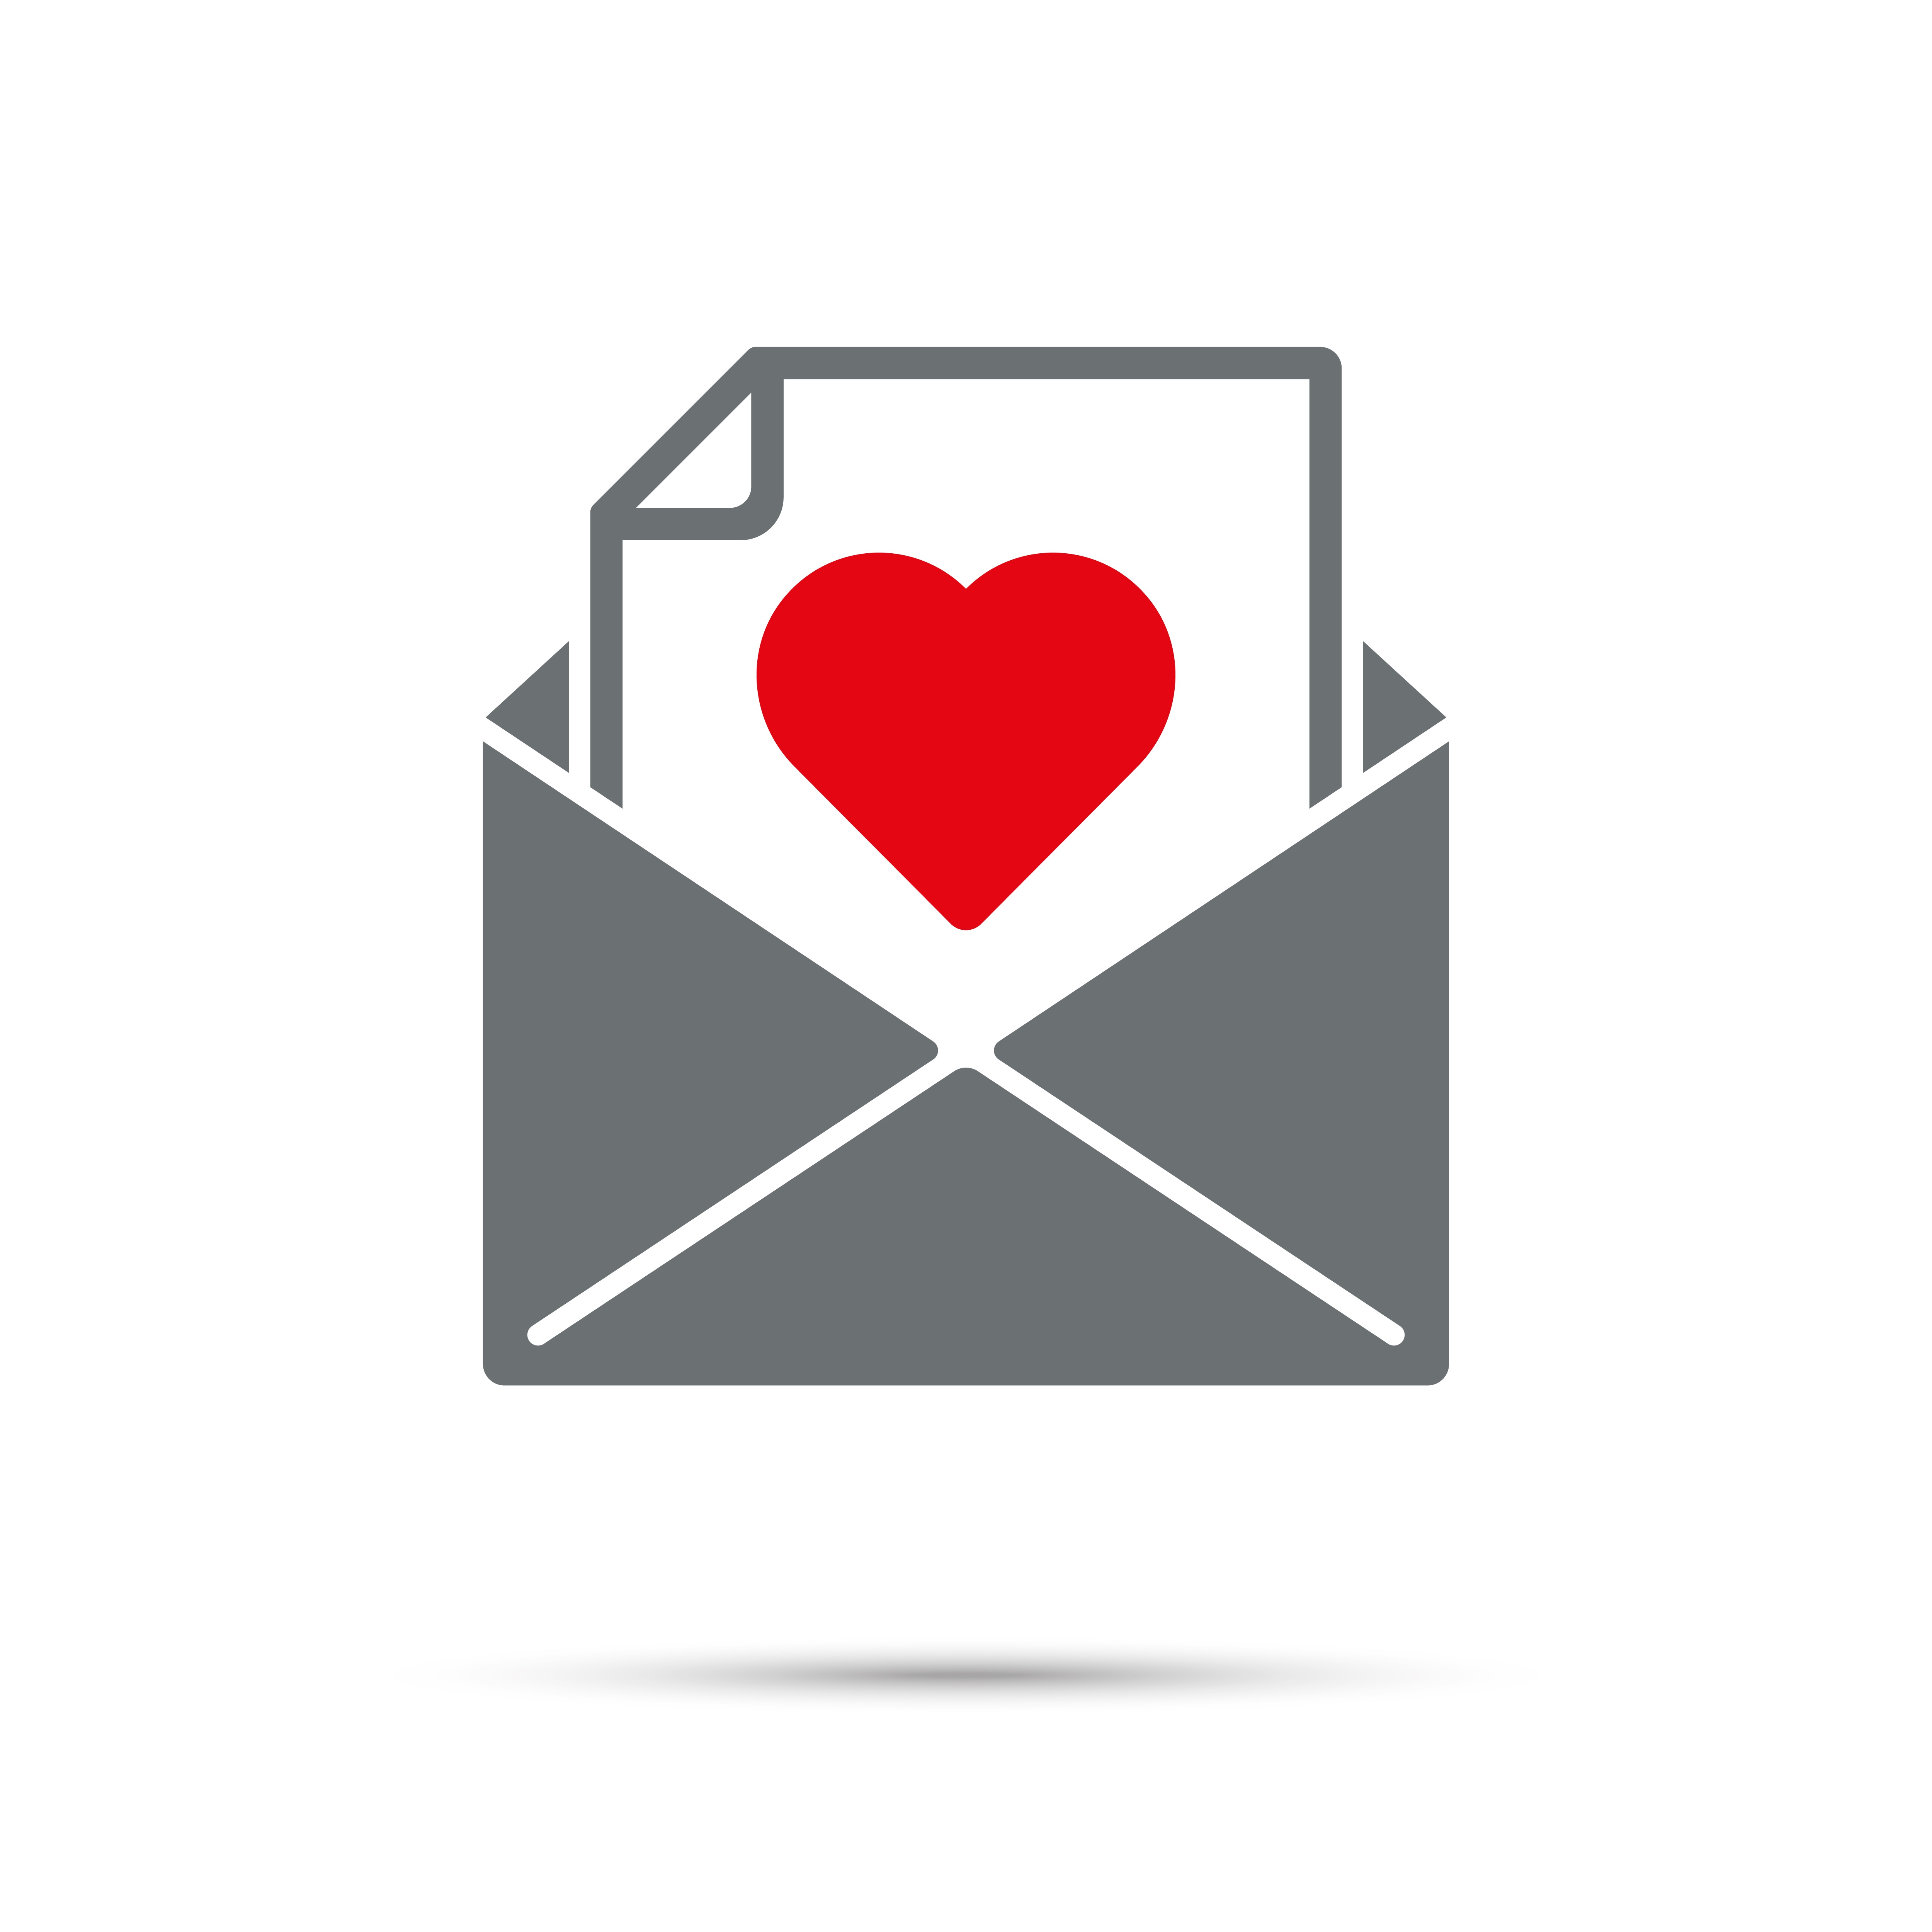 Icon of an open gray envelope with a piece of paper inside that includes a large red heart on it.